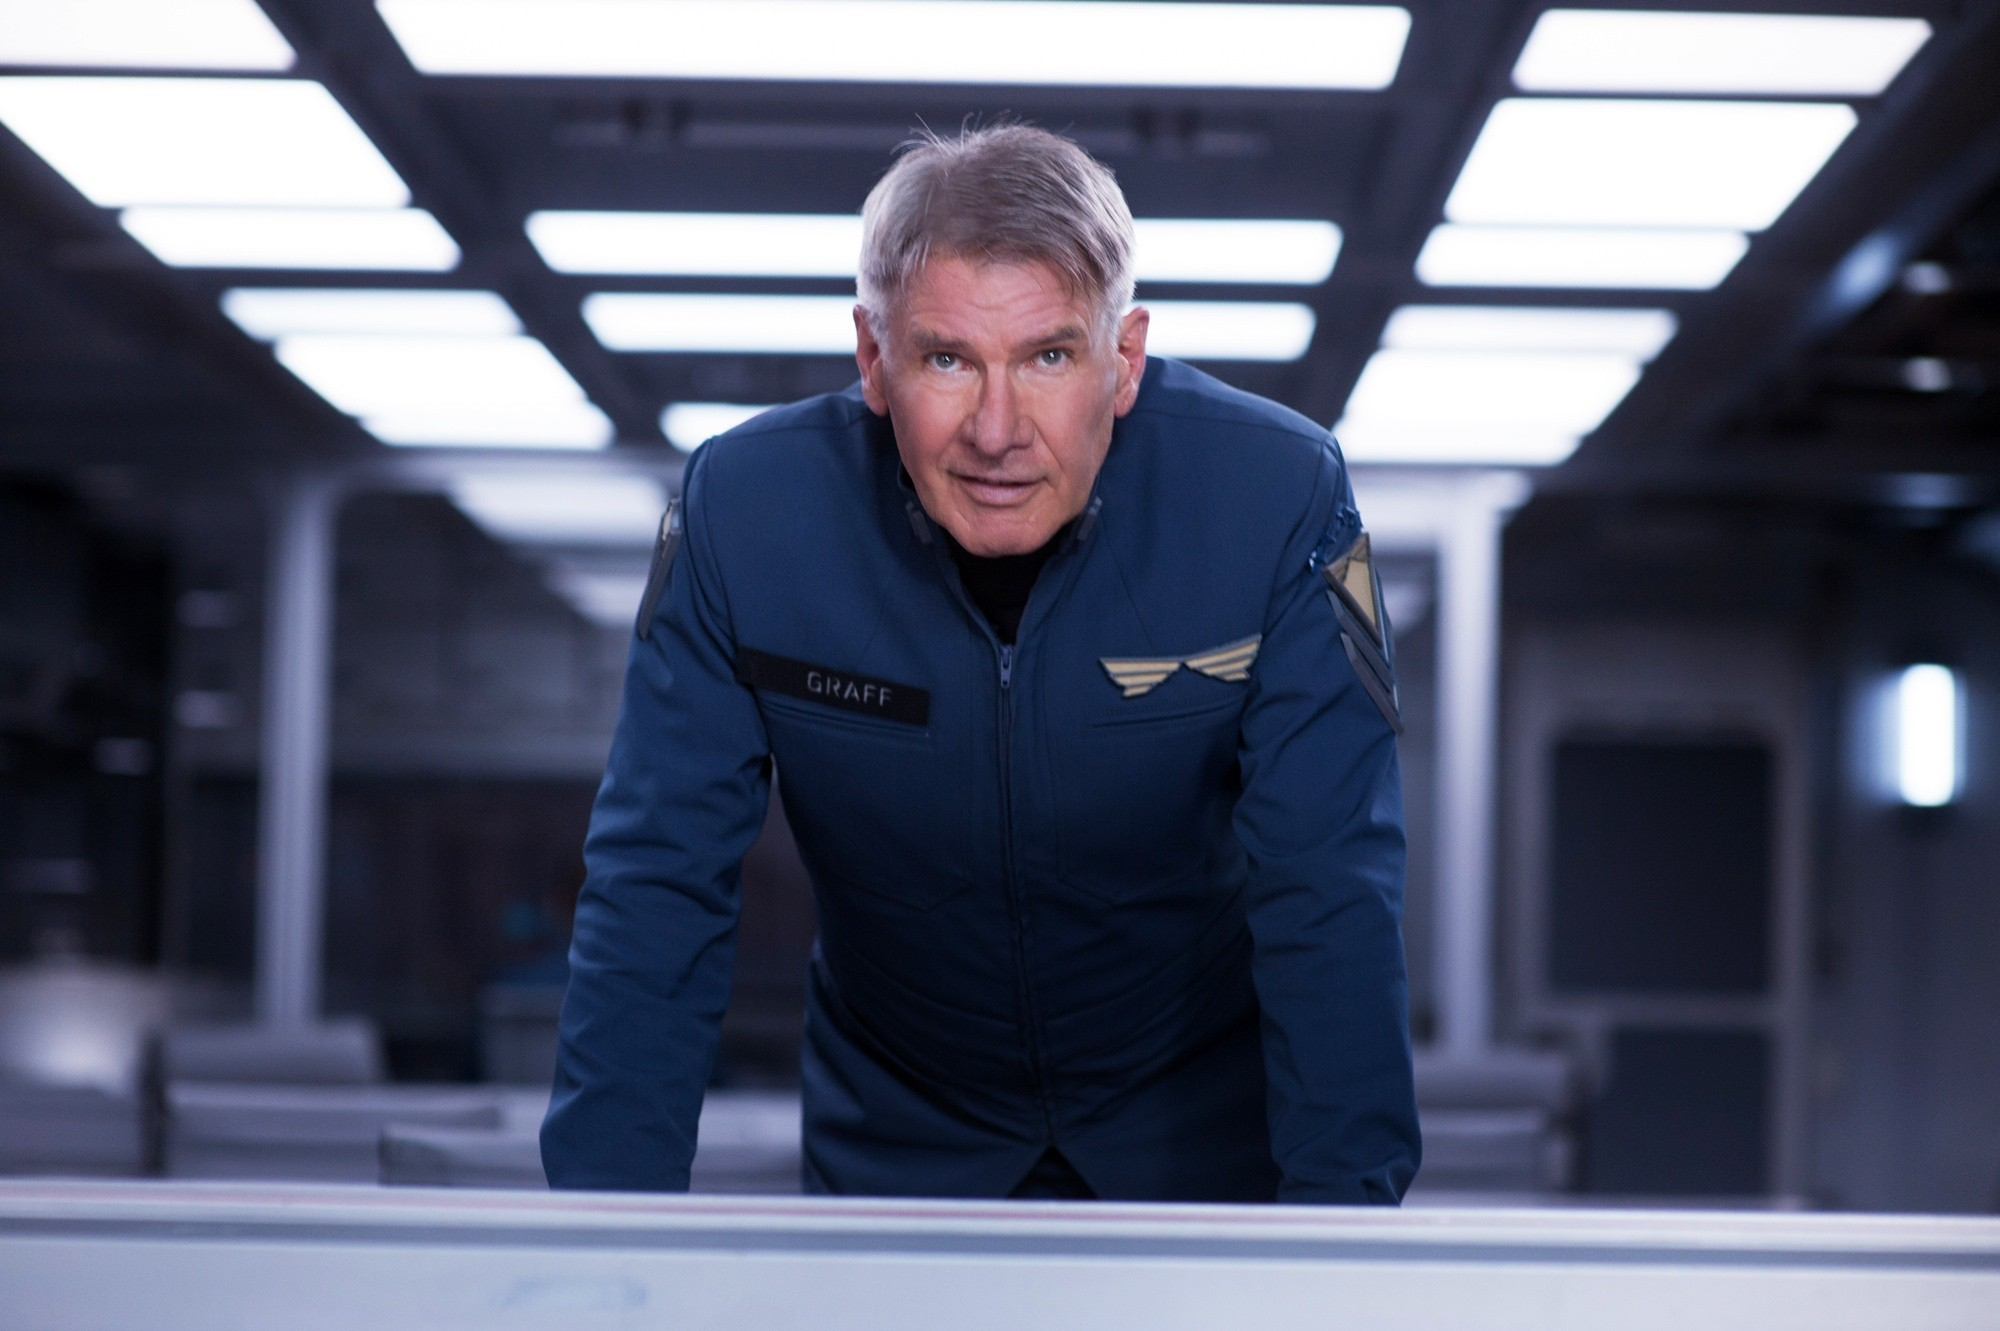 Harrison Ford in 'Ender's Game'